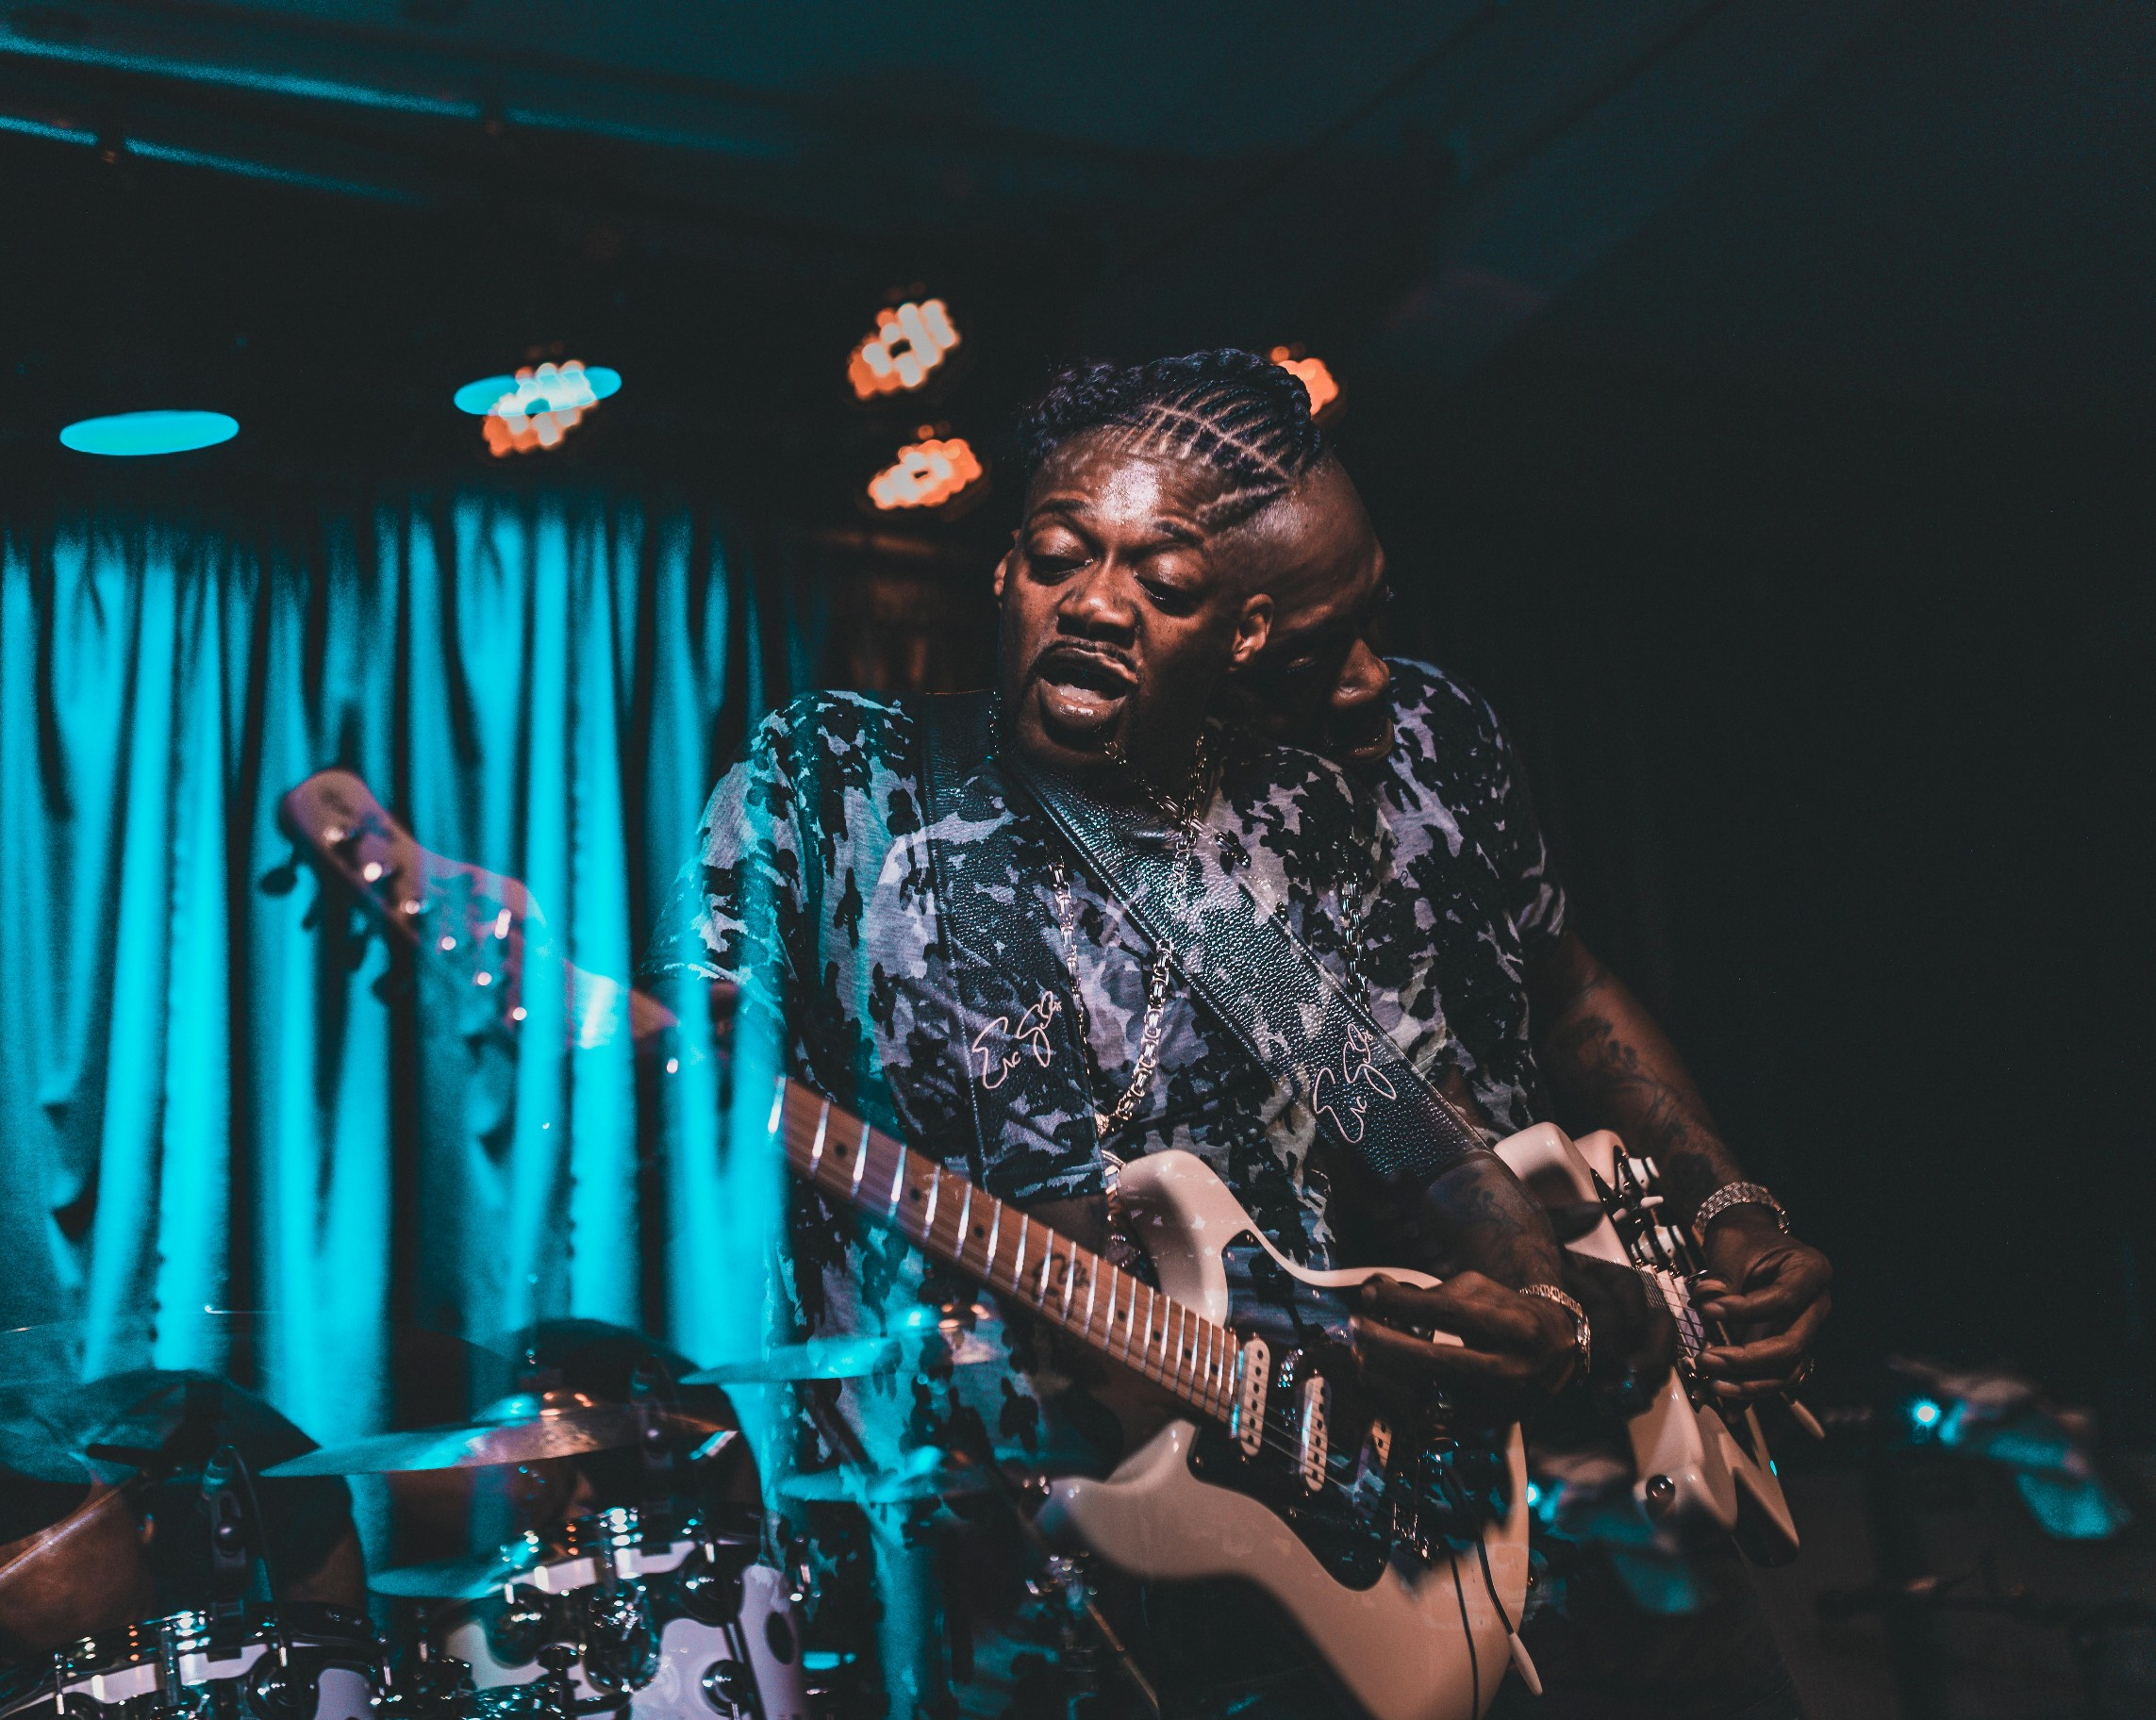 Eric Gales psychedelic by Ryan Swanich